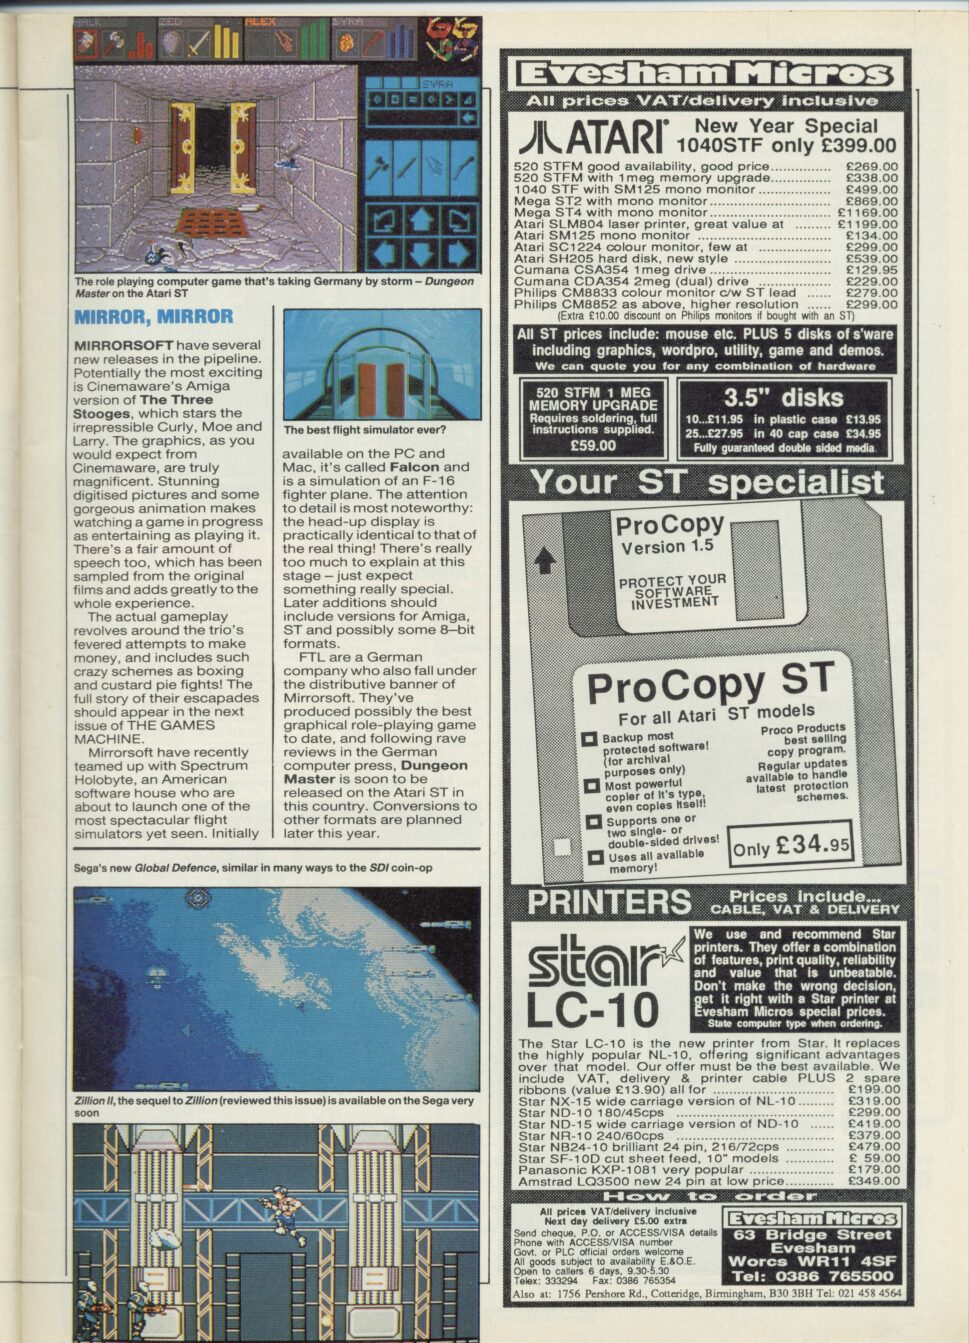 Dungeon Master for Atari ST Preview published in British magazine 'The Game Machine', Issue #4, March 1988, Page 17